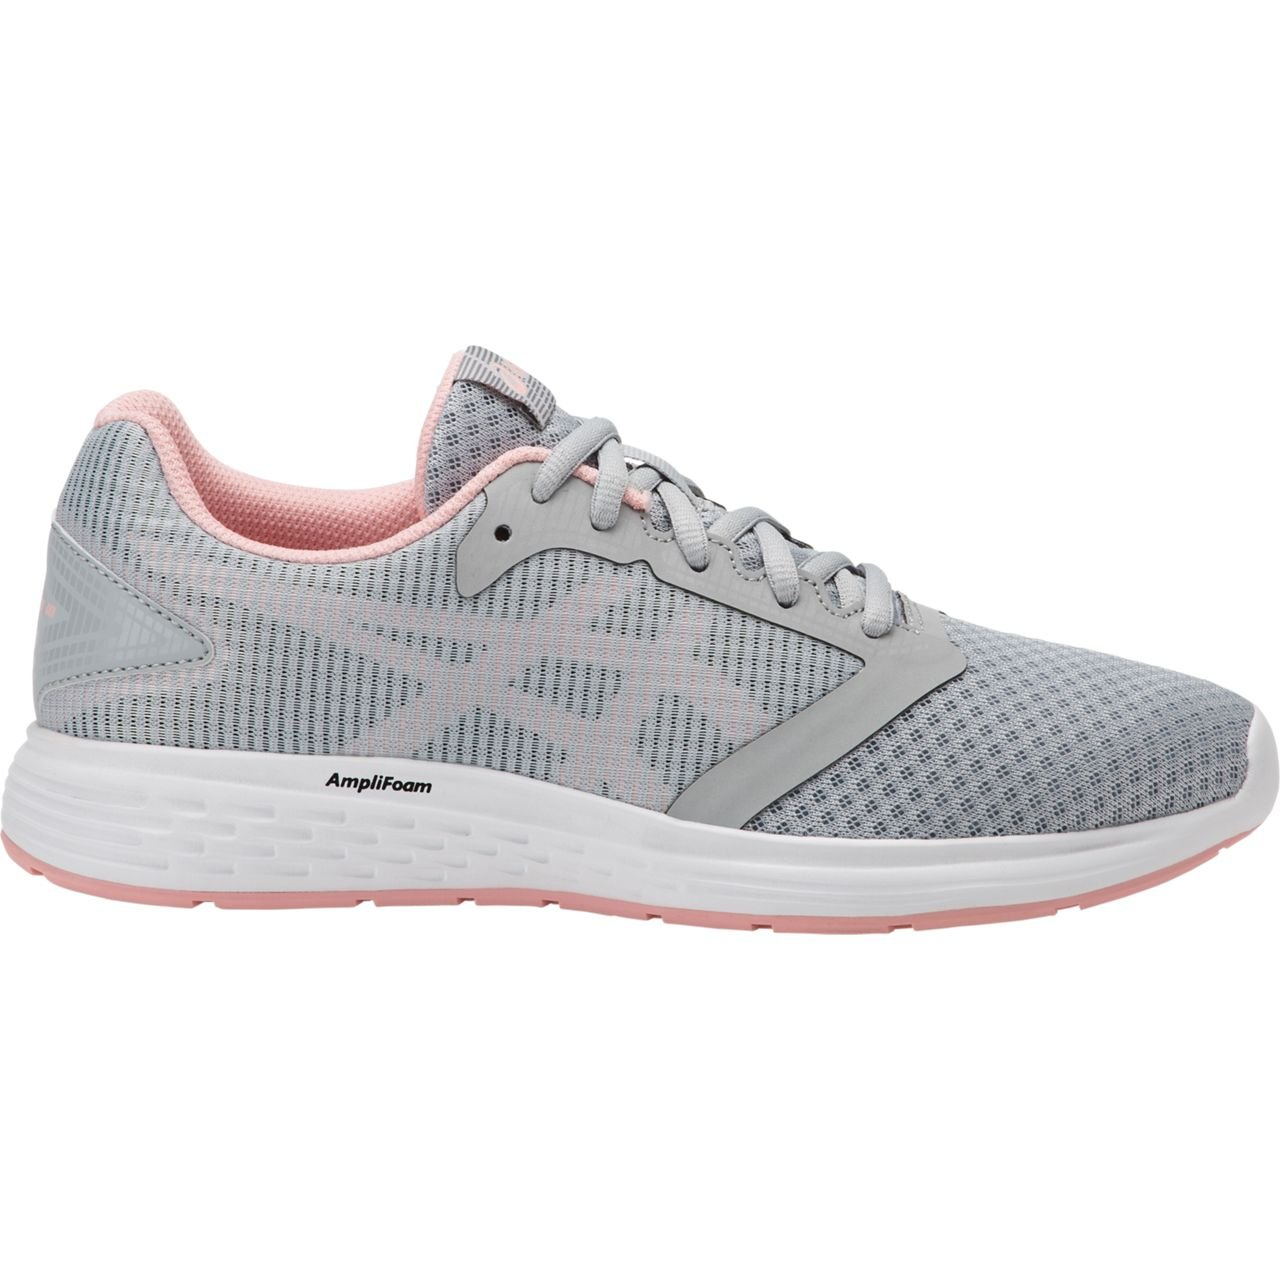 ASICS Patriot 10 Women's Running B077TYDDRG 7 B(M) US|Mid Grey/Frosted Rose